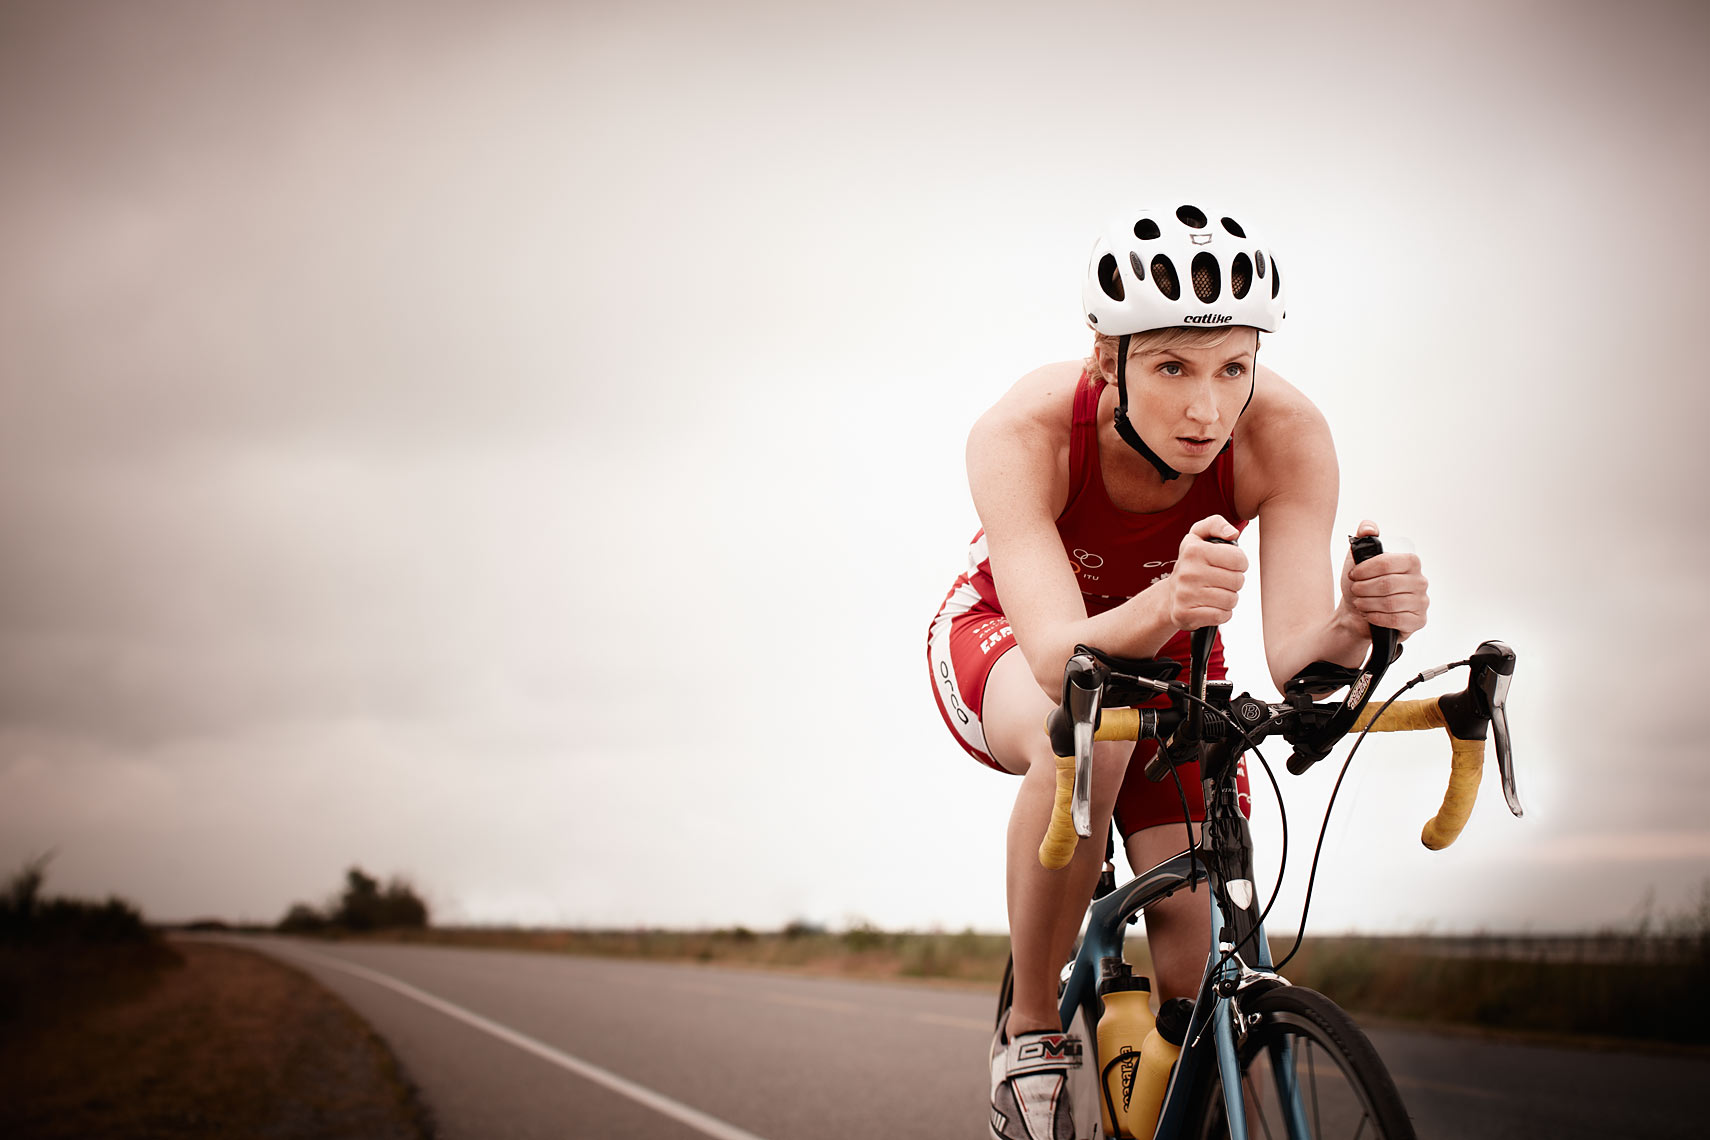 Triathlete-Bike-Athlete-Portrait.jpg